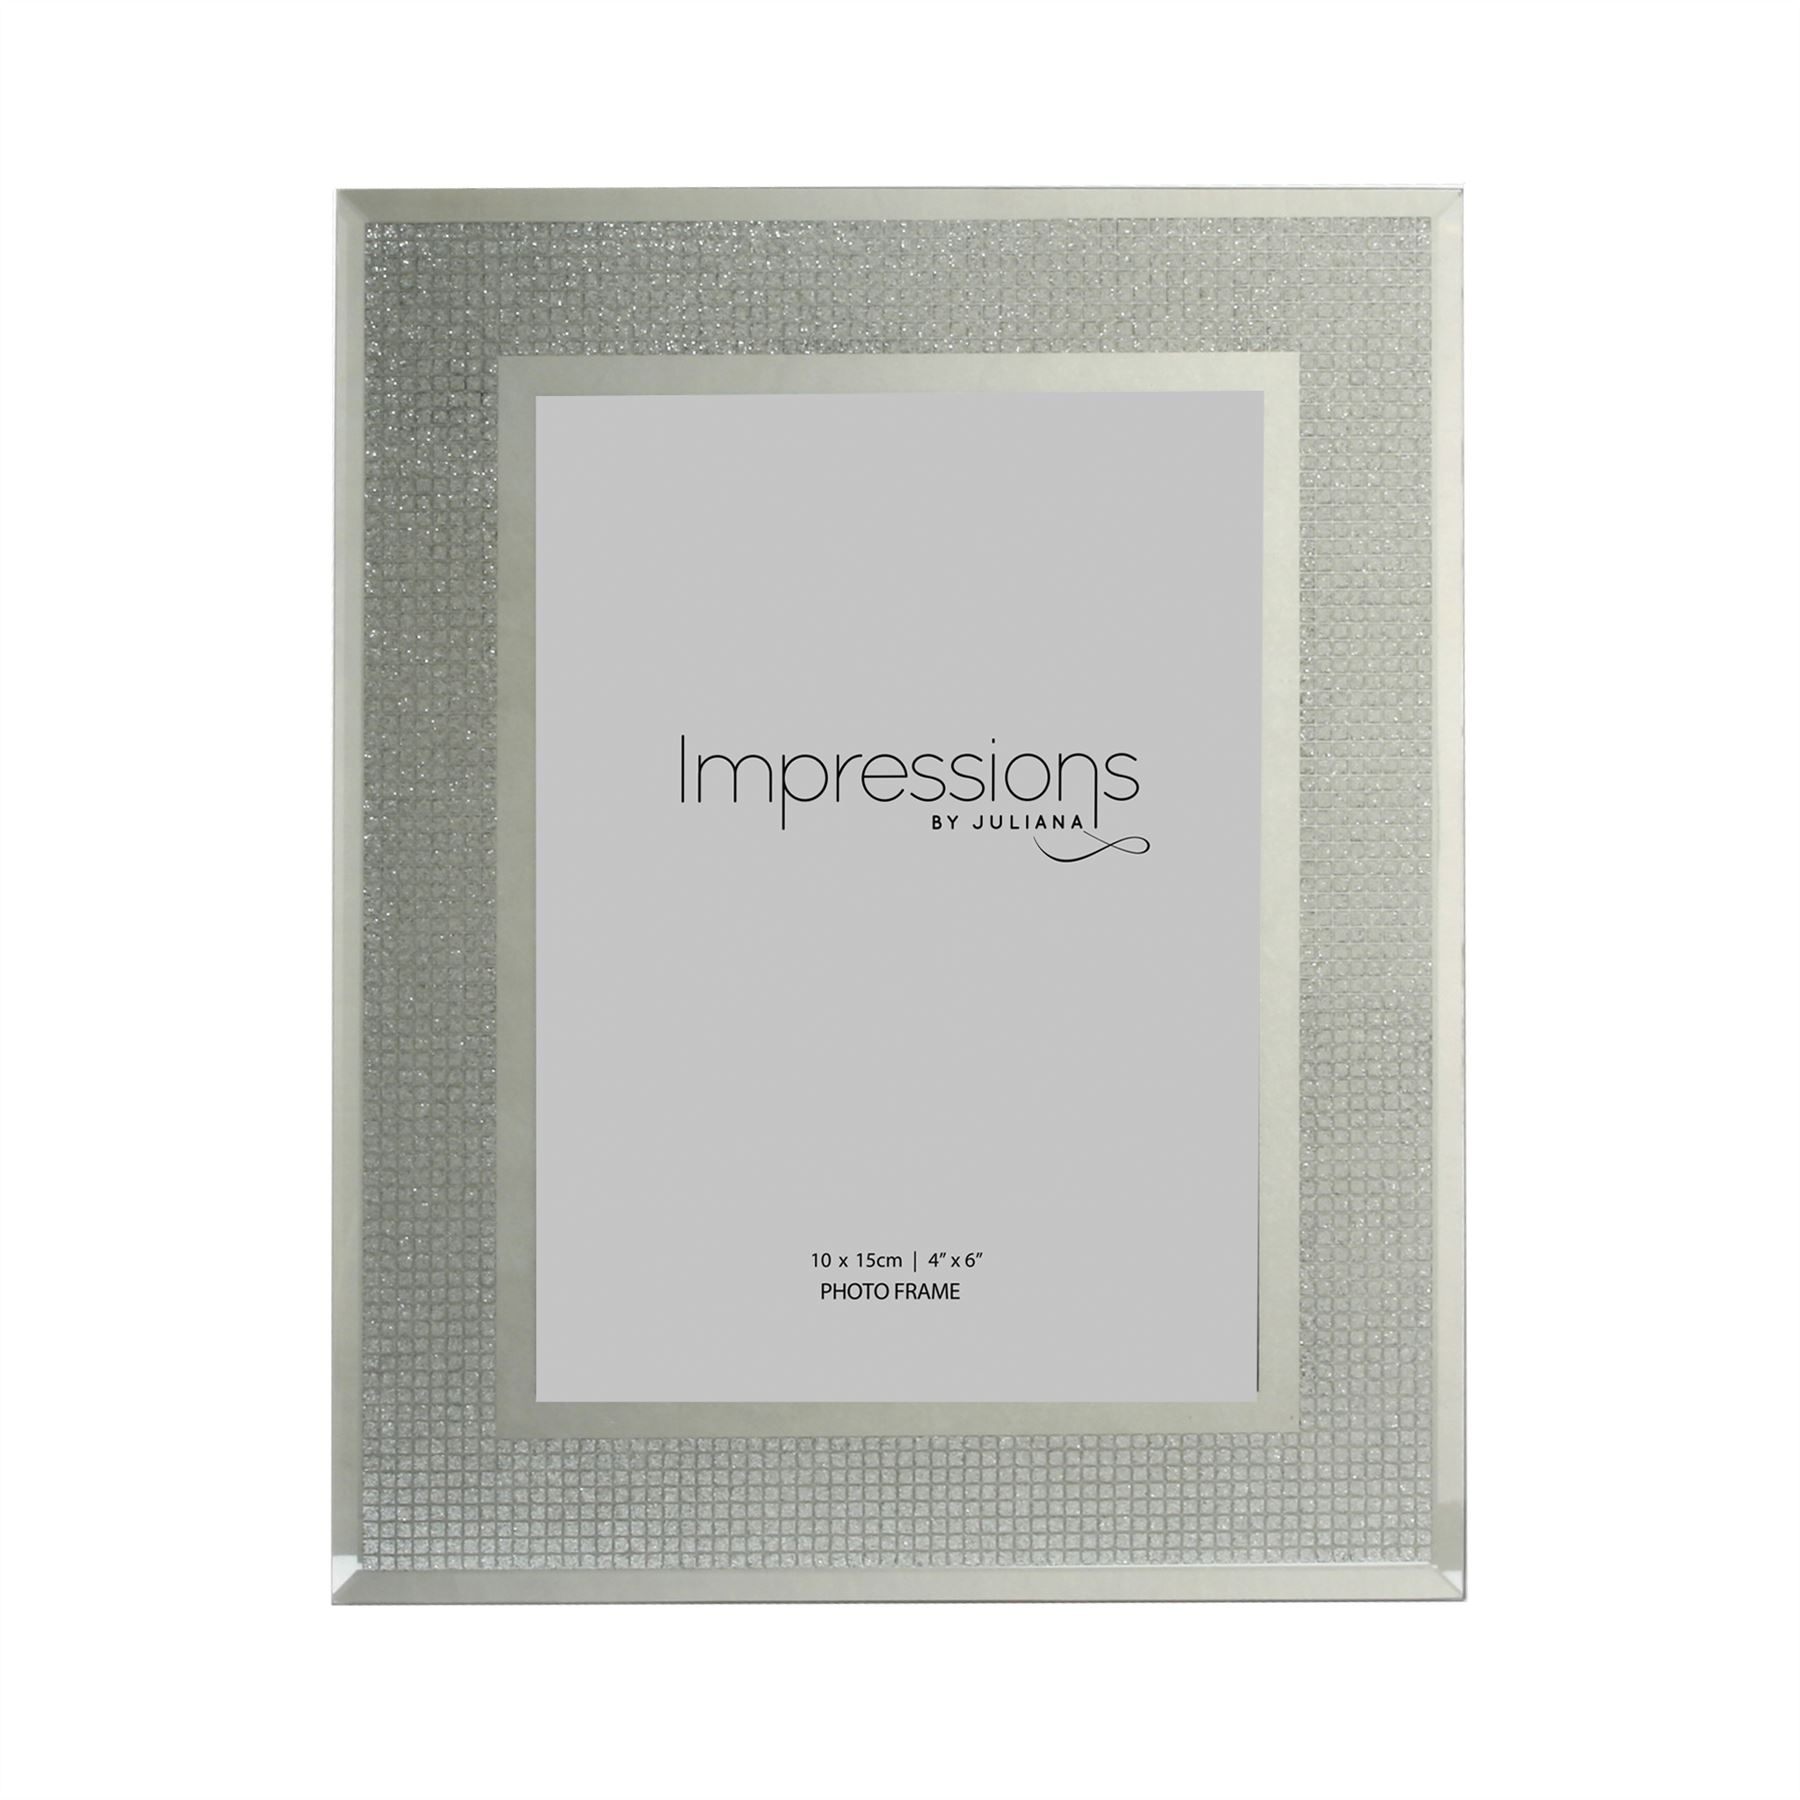 Impressions by Juliana Glass Frame with Glitter Crystal Squares Different Sizes